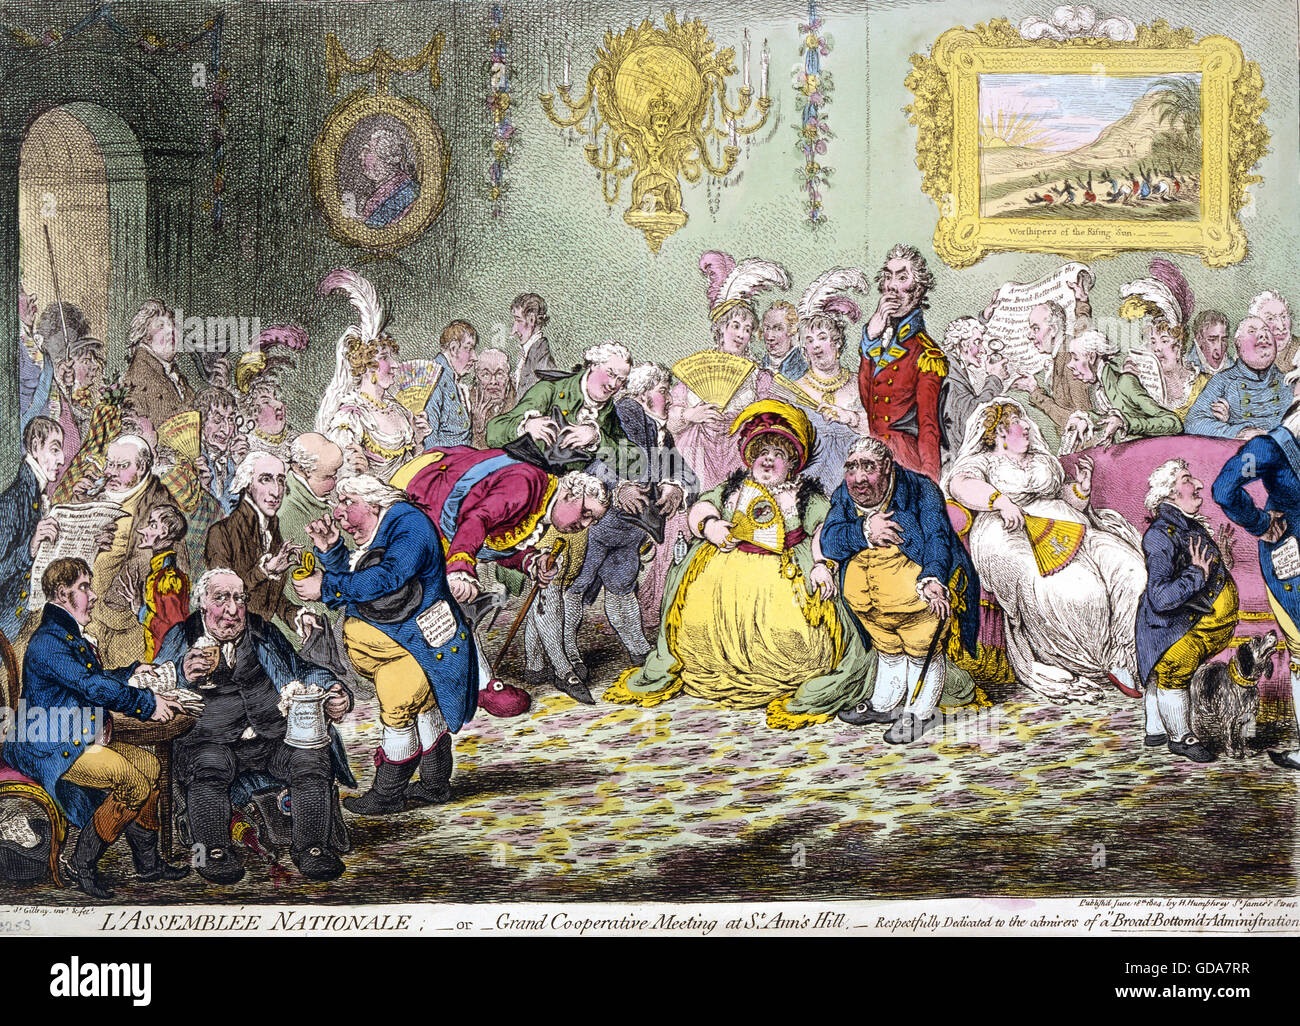 JAMES GILLRAY (1756/7-1815) English caricaturist. L'Assemblee Nationale (1804) - Stock Image